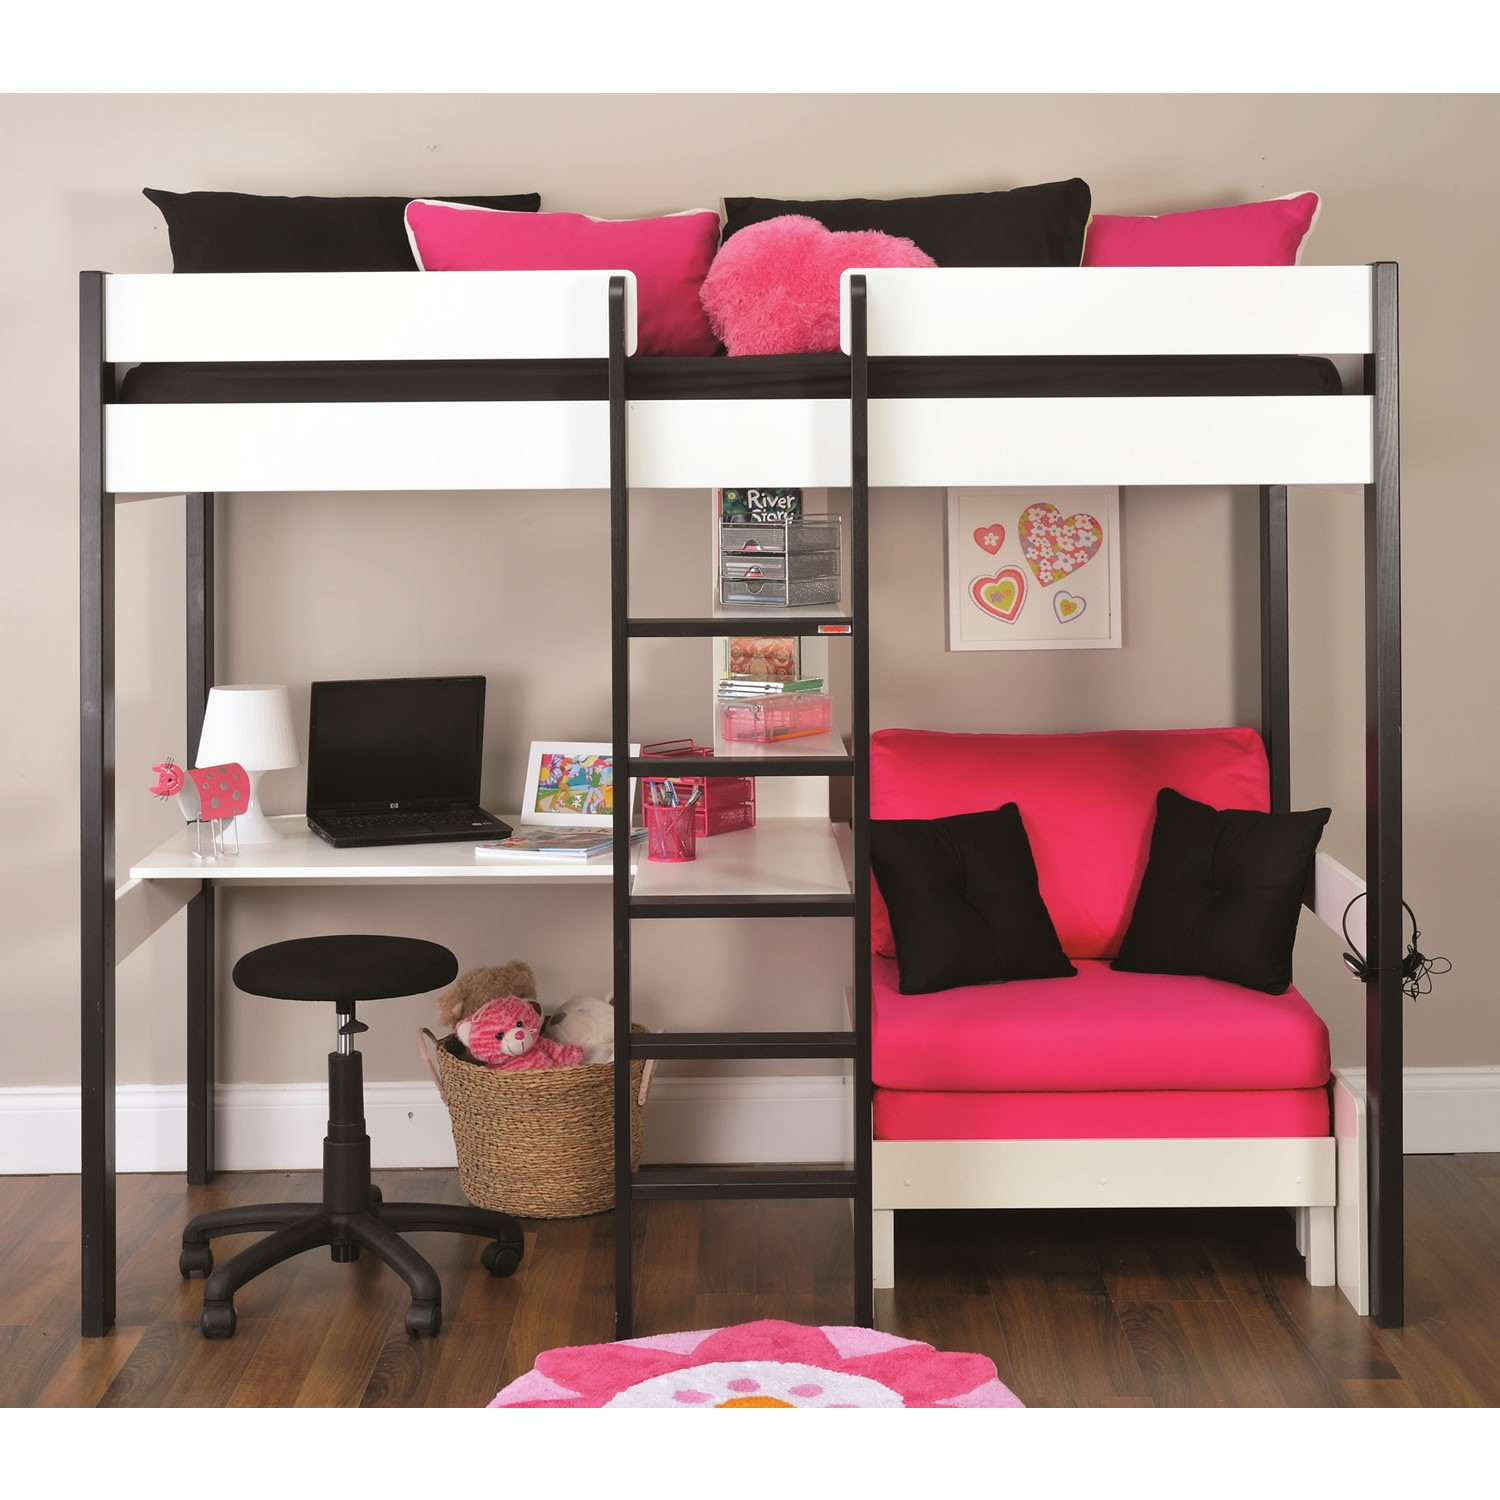 More Than 20 Beautiful Couch Bunk Bed Designs Bahay Ofw